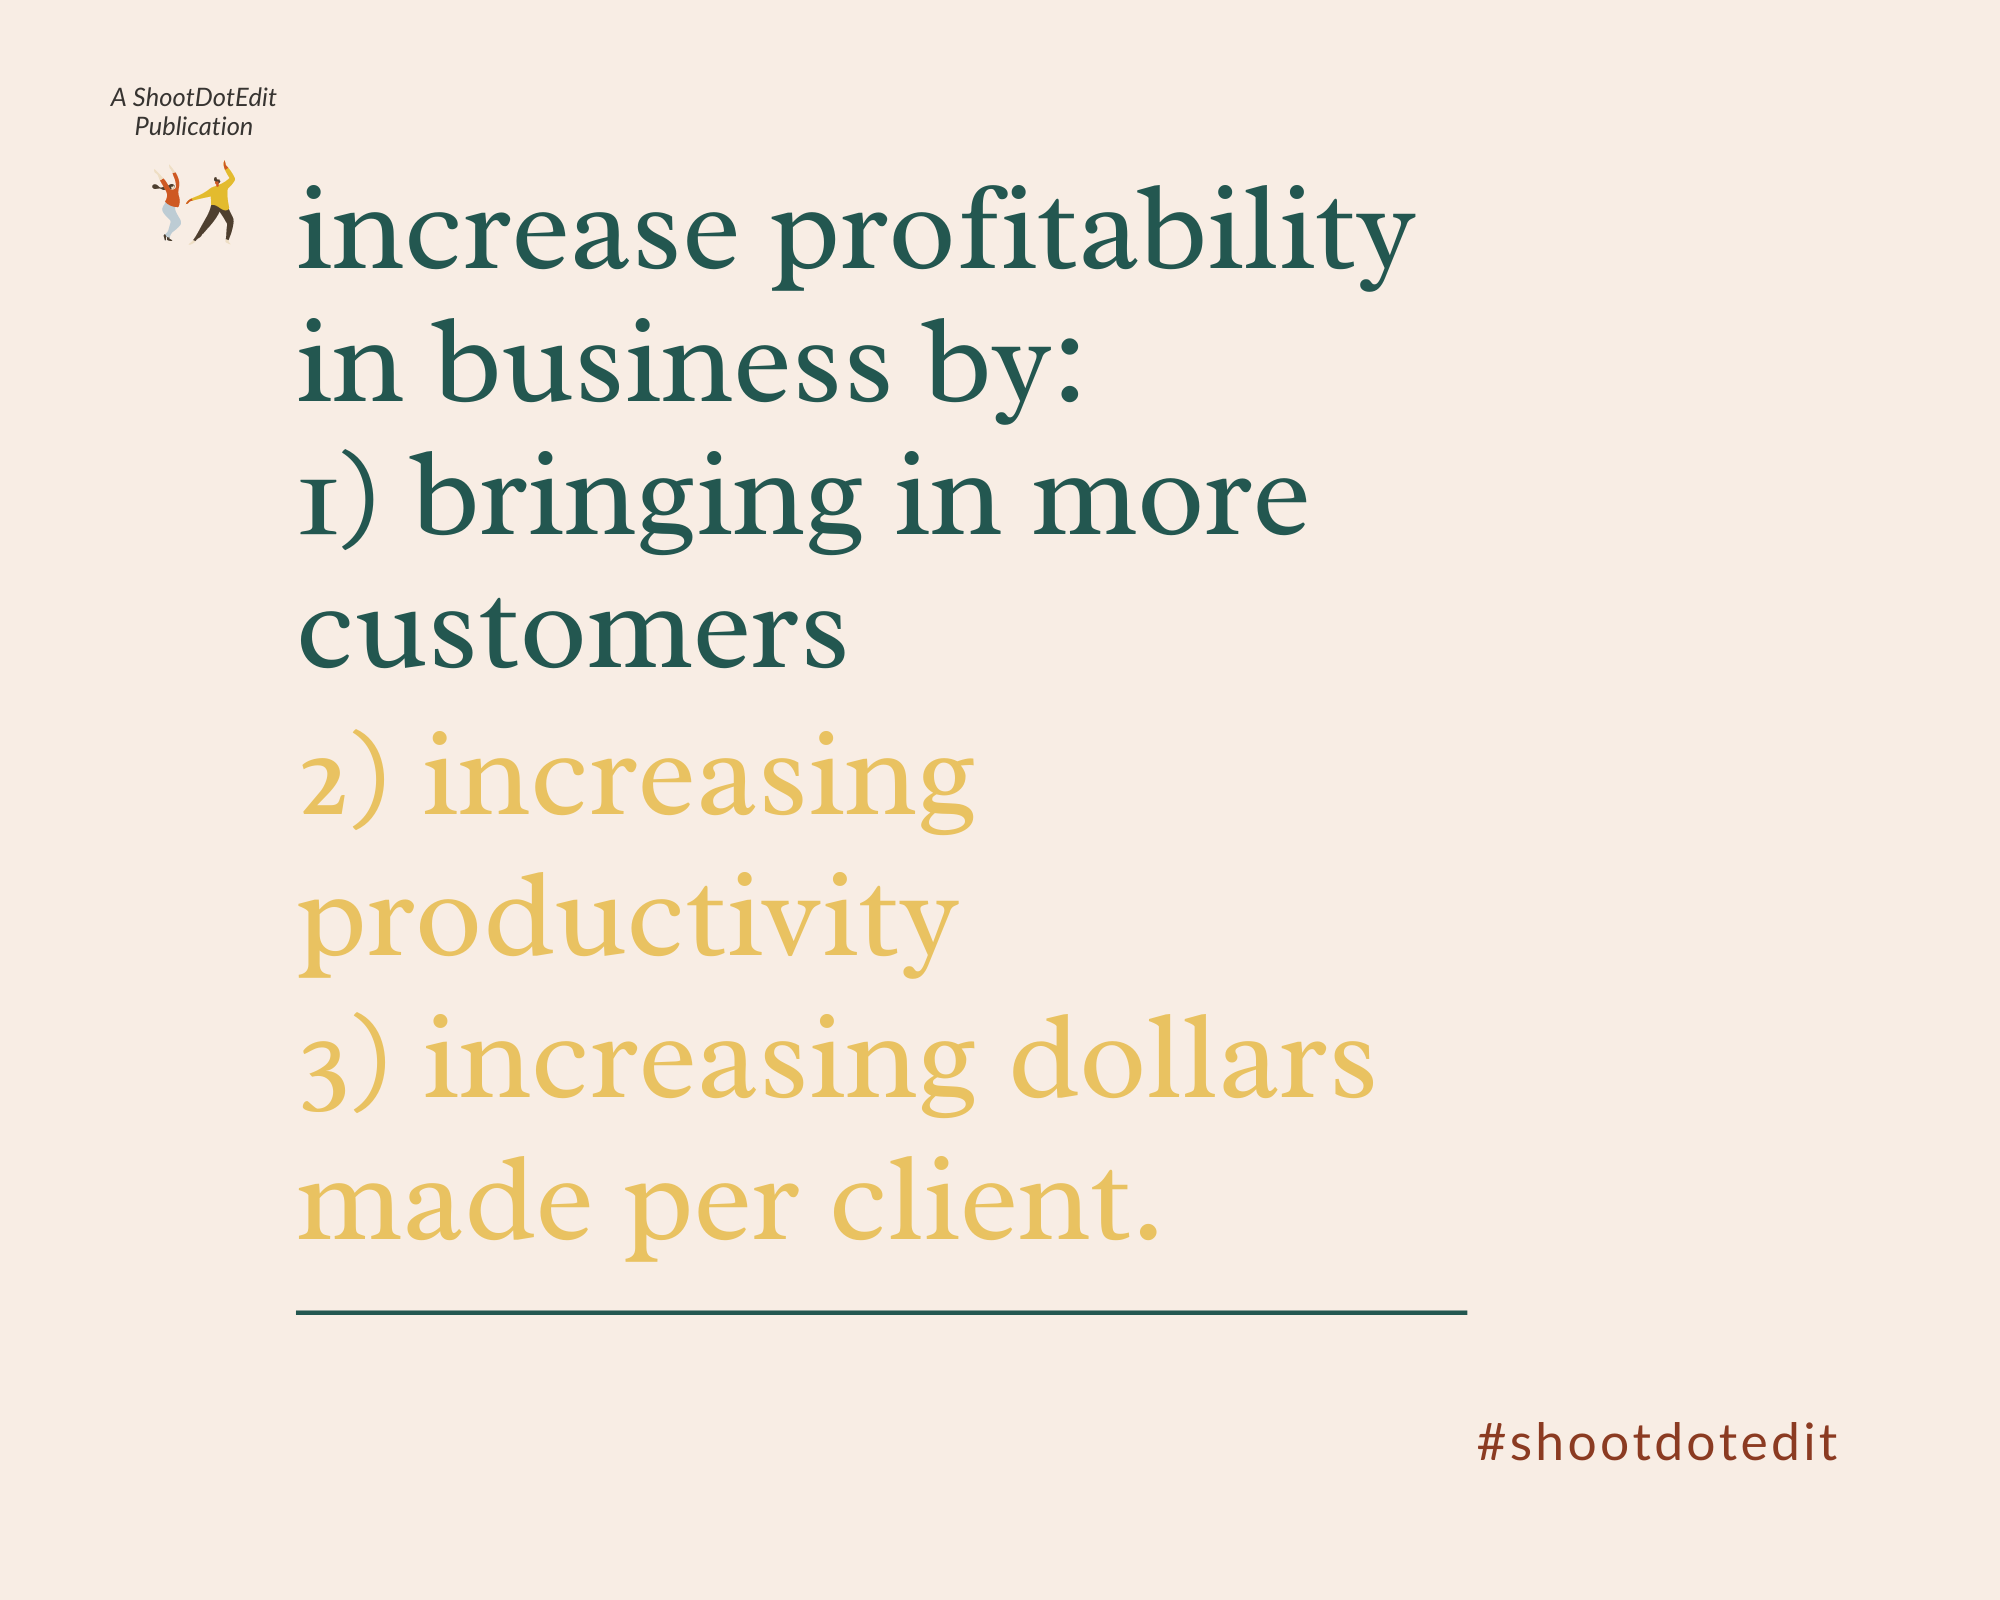 Infographic stating increase profitability in business by bringing in more customers, increasing productivity, and increasing dollars made per client